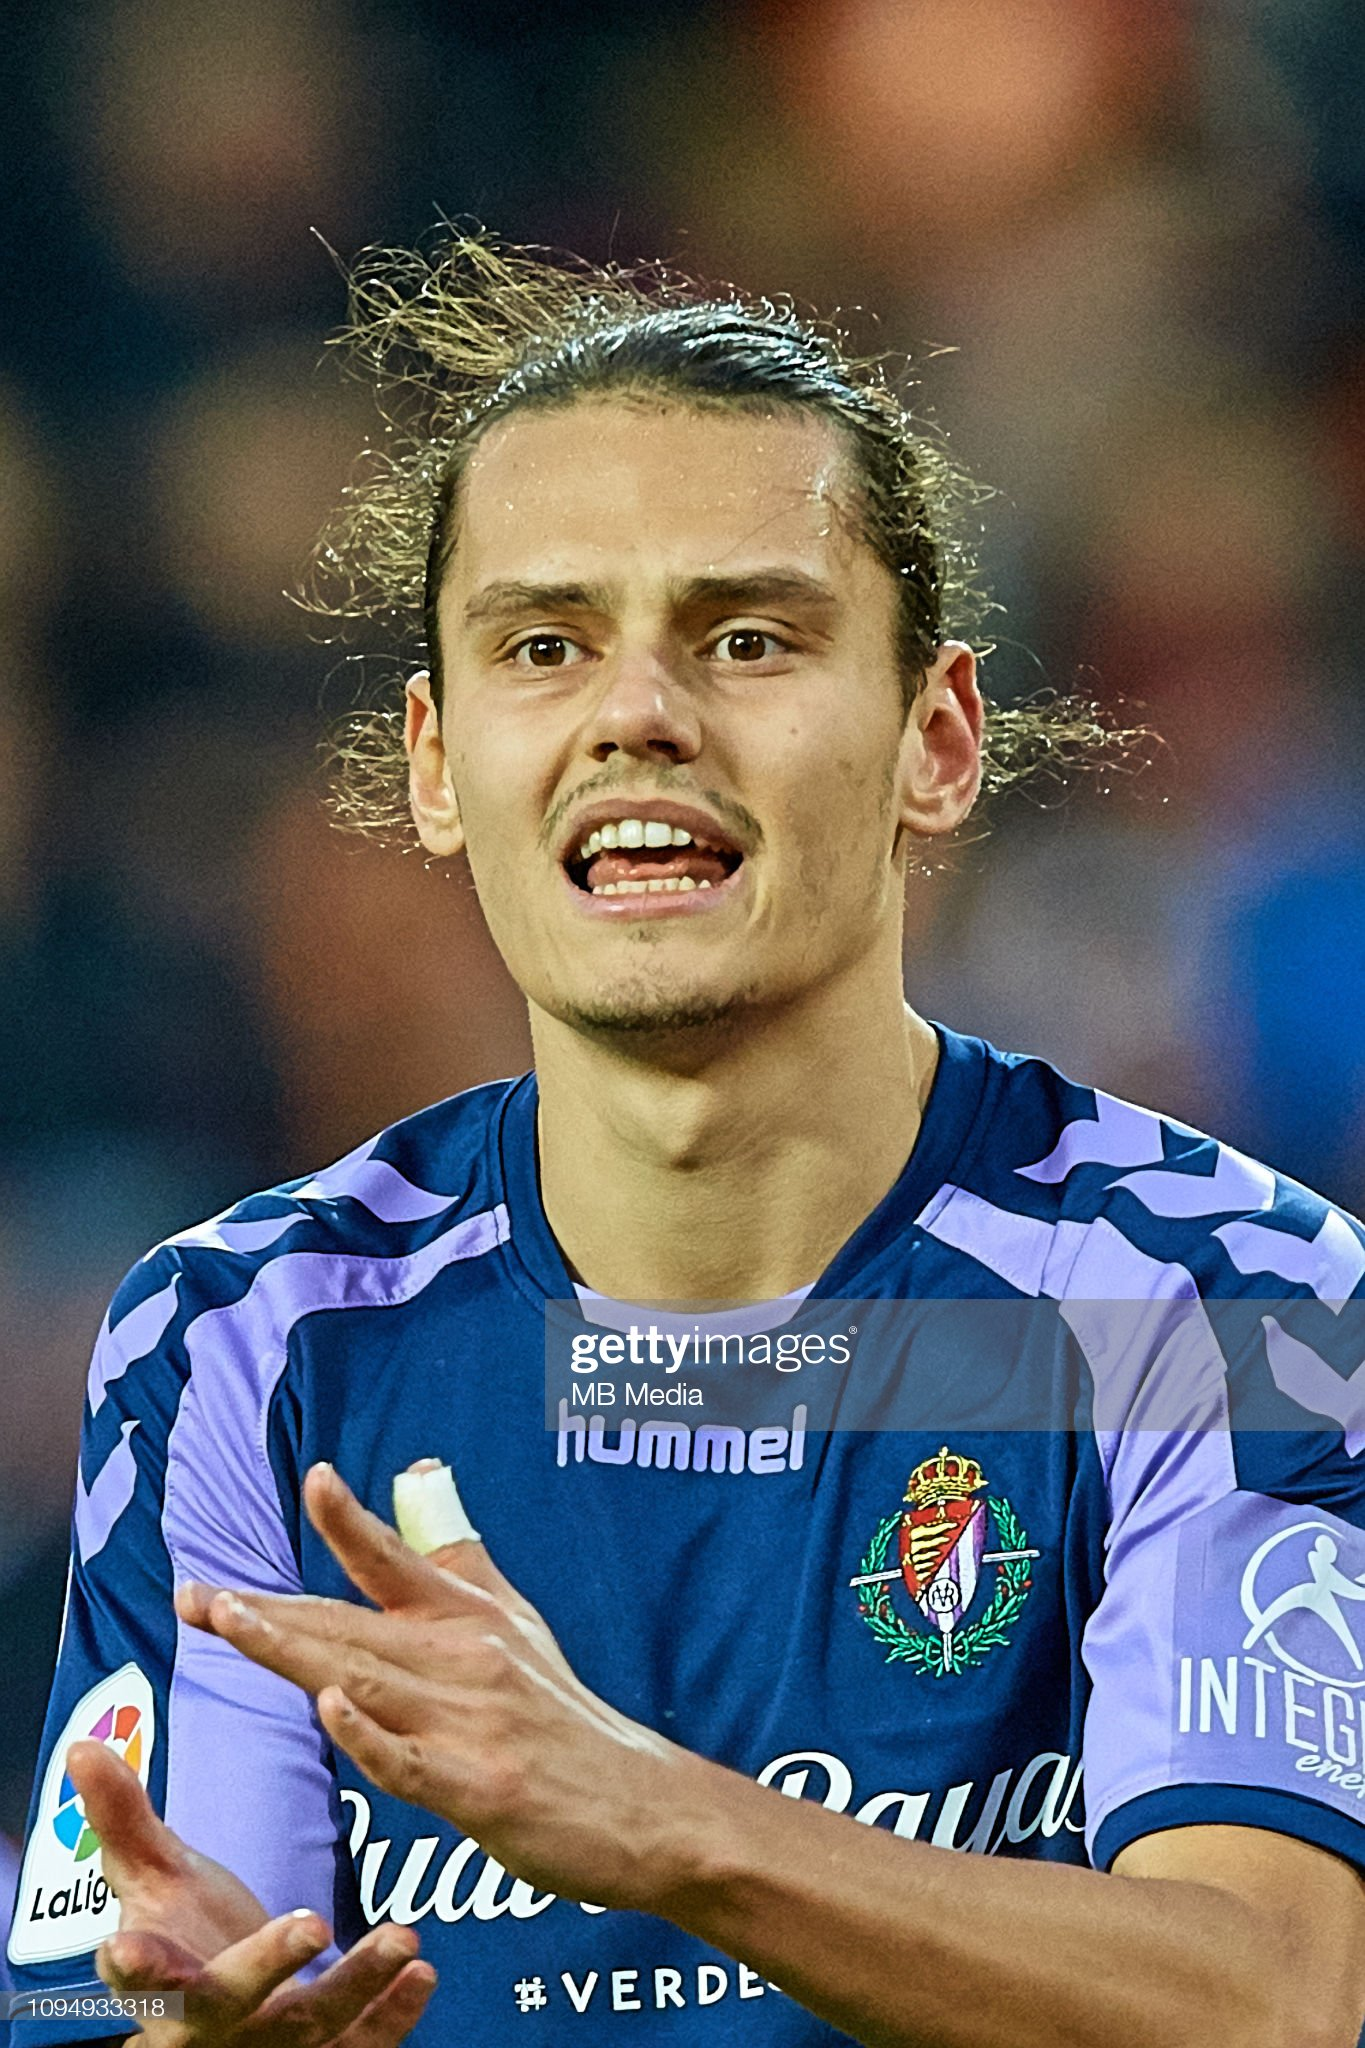 ¿Cuánto mide Enes Unal? - Altura - Real height Enes-unal-during-the-la-liga-match-between-valencia-cf-and-real-cf-picture-id1094933318?s=2048x2048